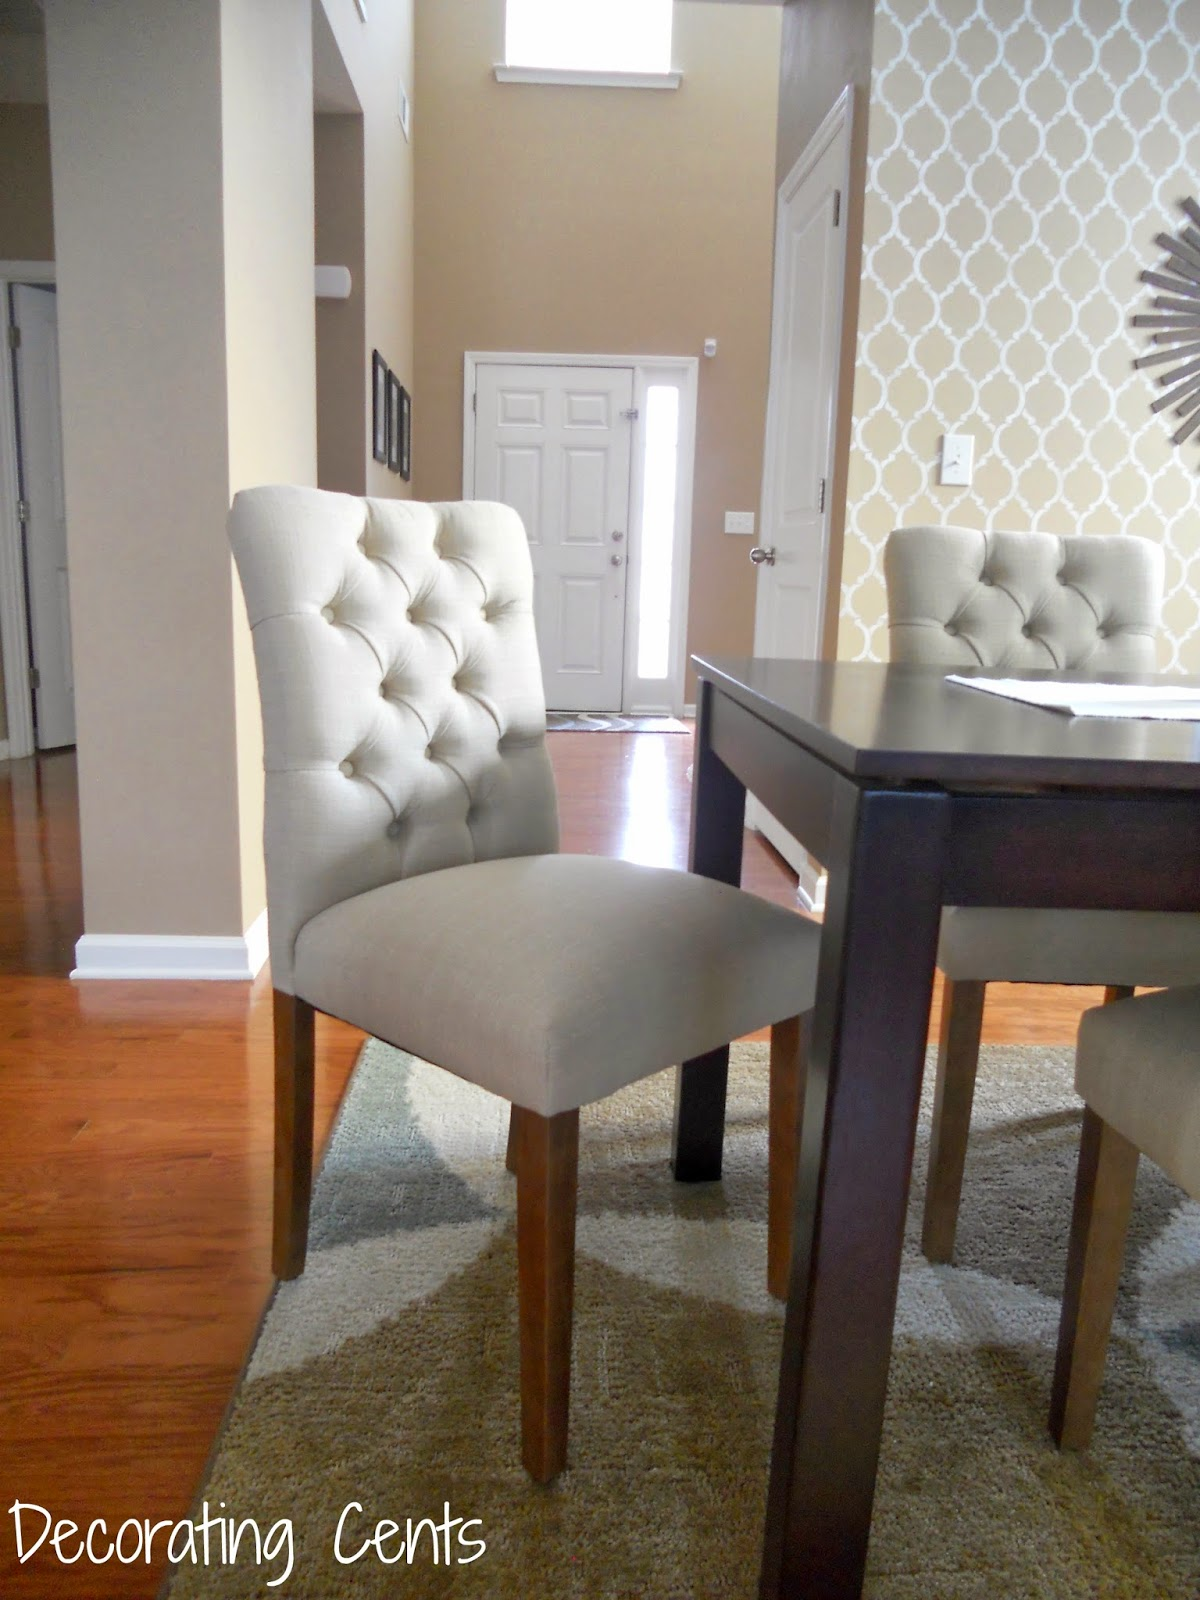 Monday, March 17, 2014 - Decorating Cents: New Dining Chairs